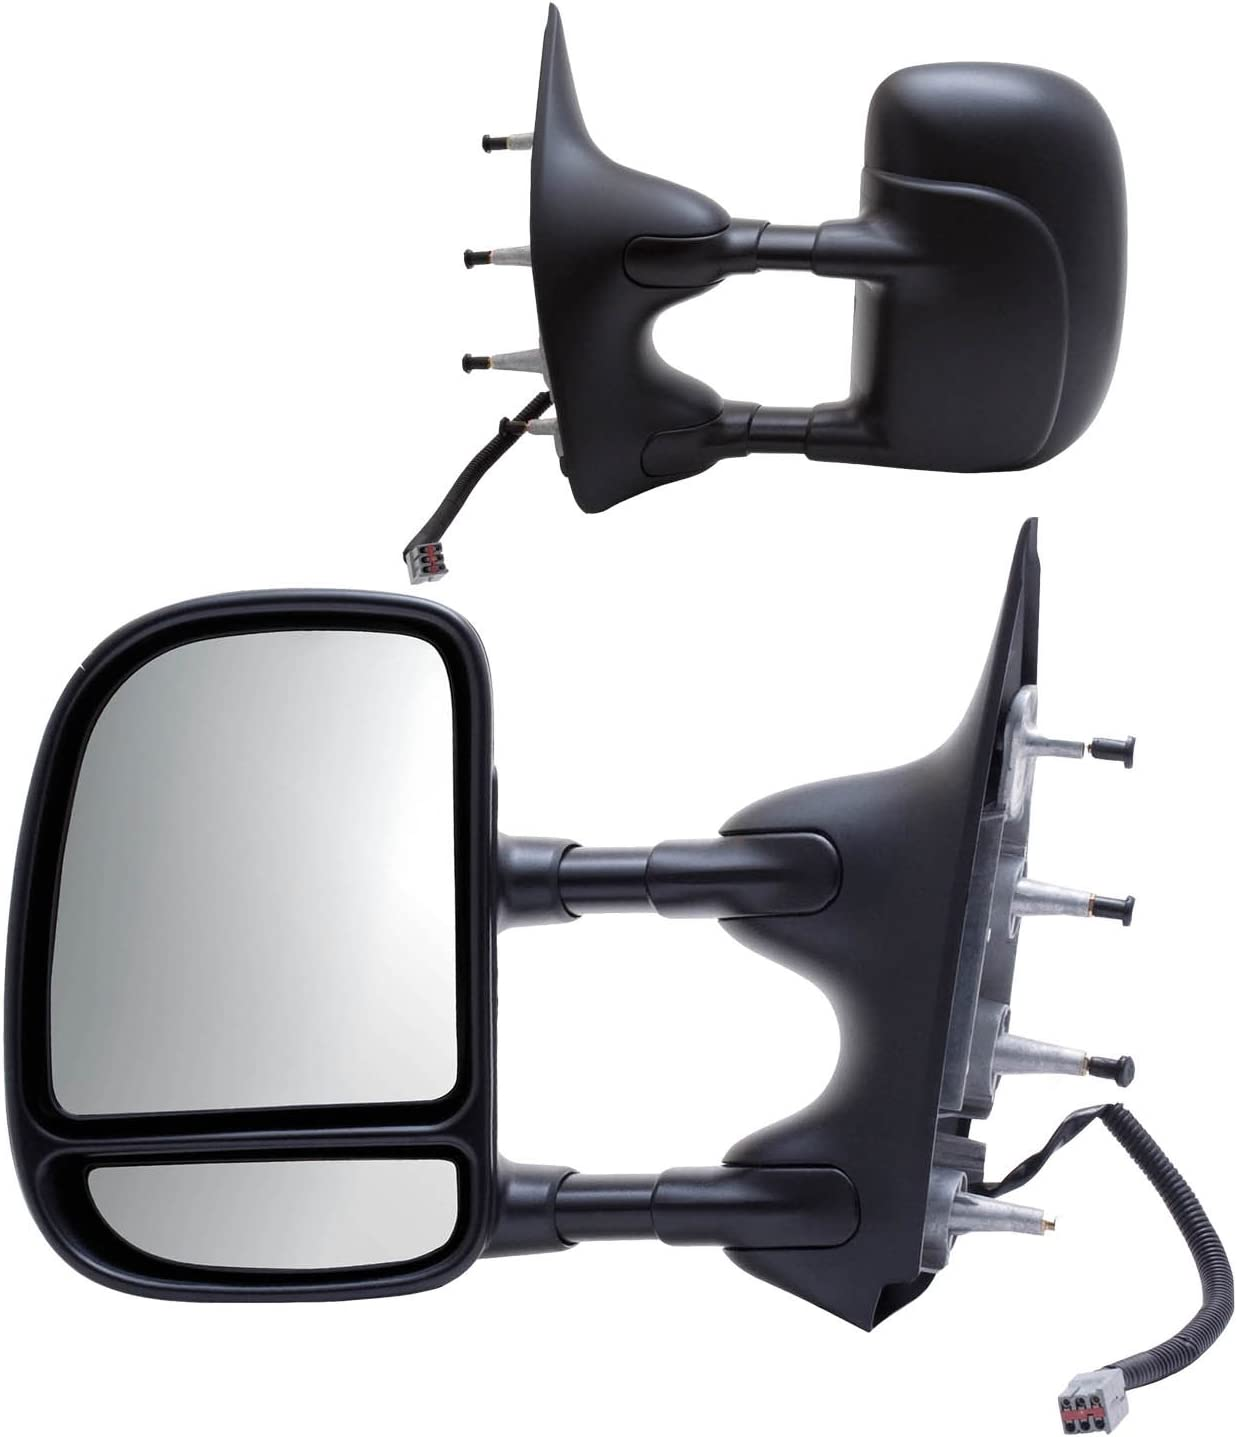 Fit System Towing Mirror Pair for Ford Econoline Van, Textured Black, extendable, Foldaway, Power